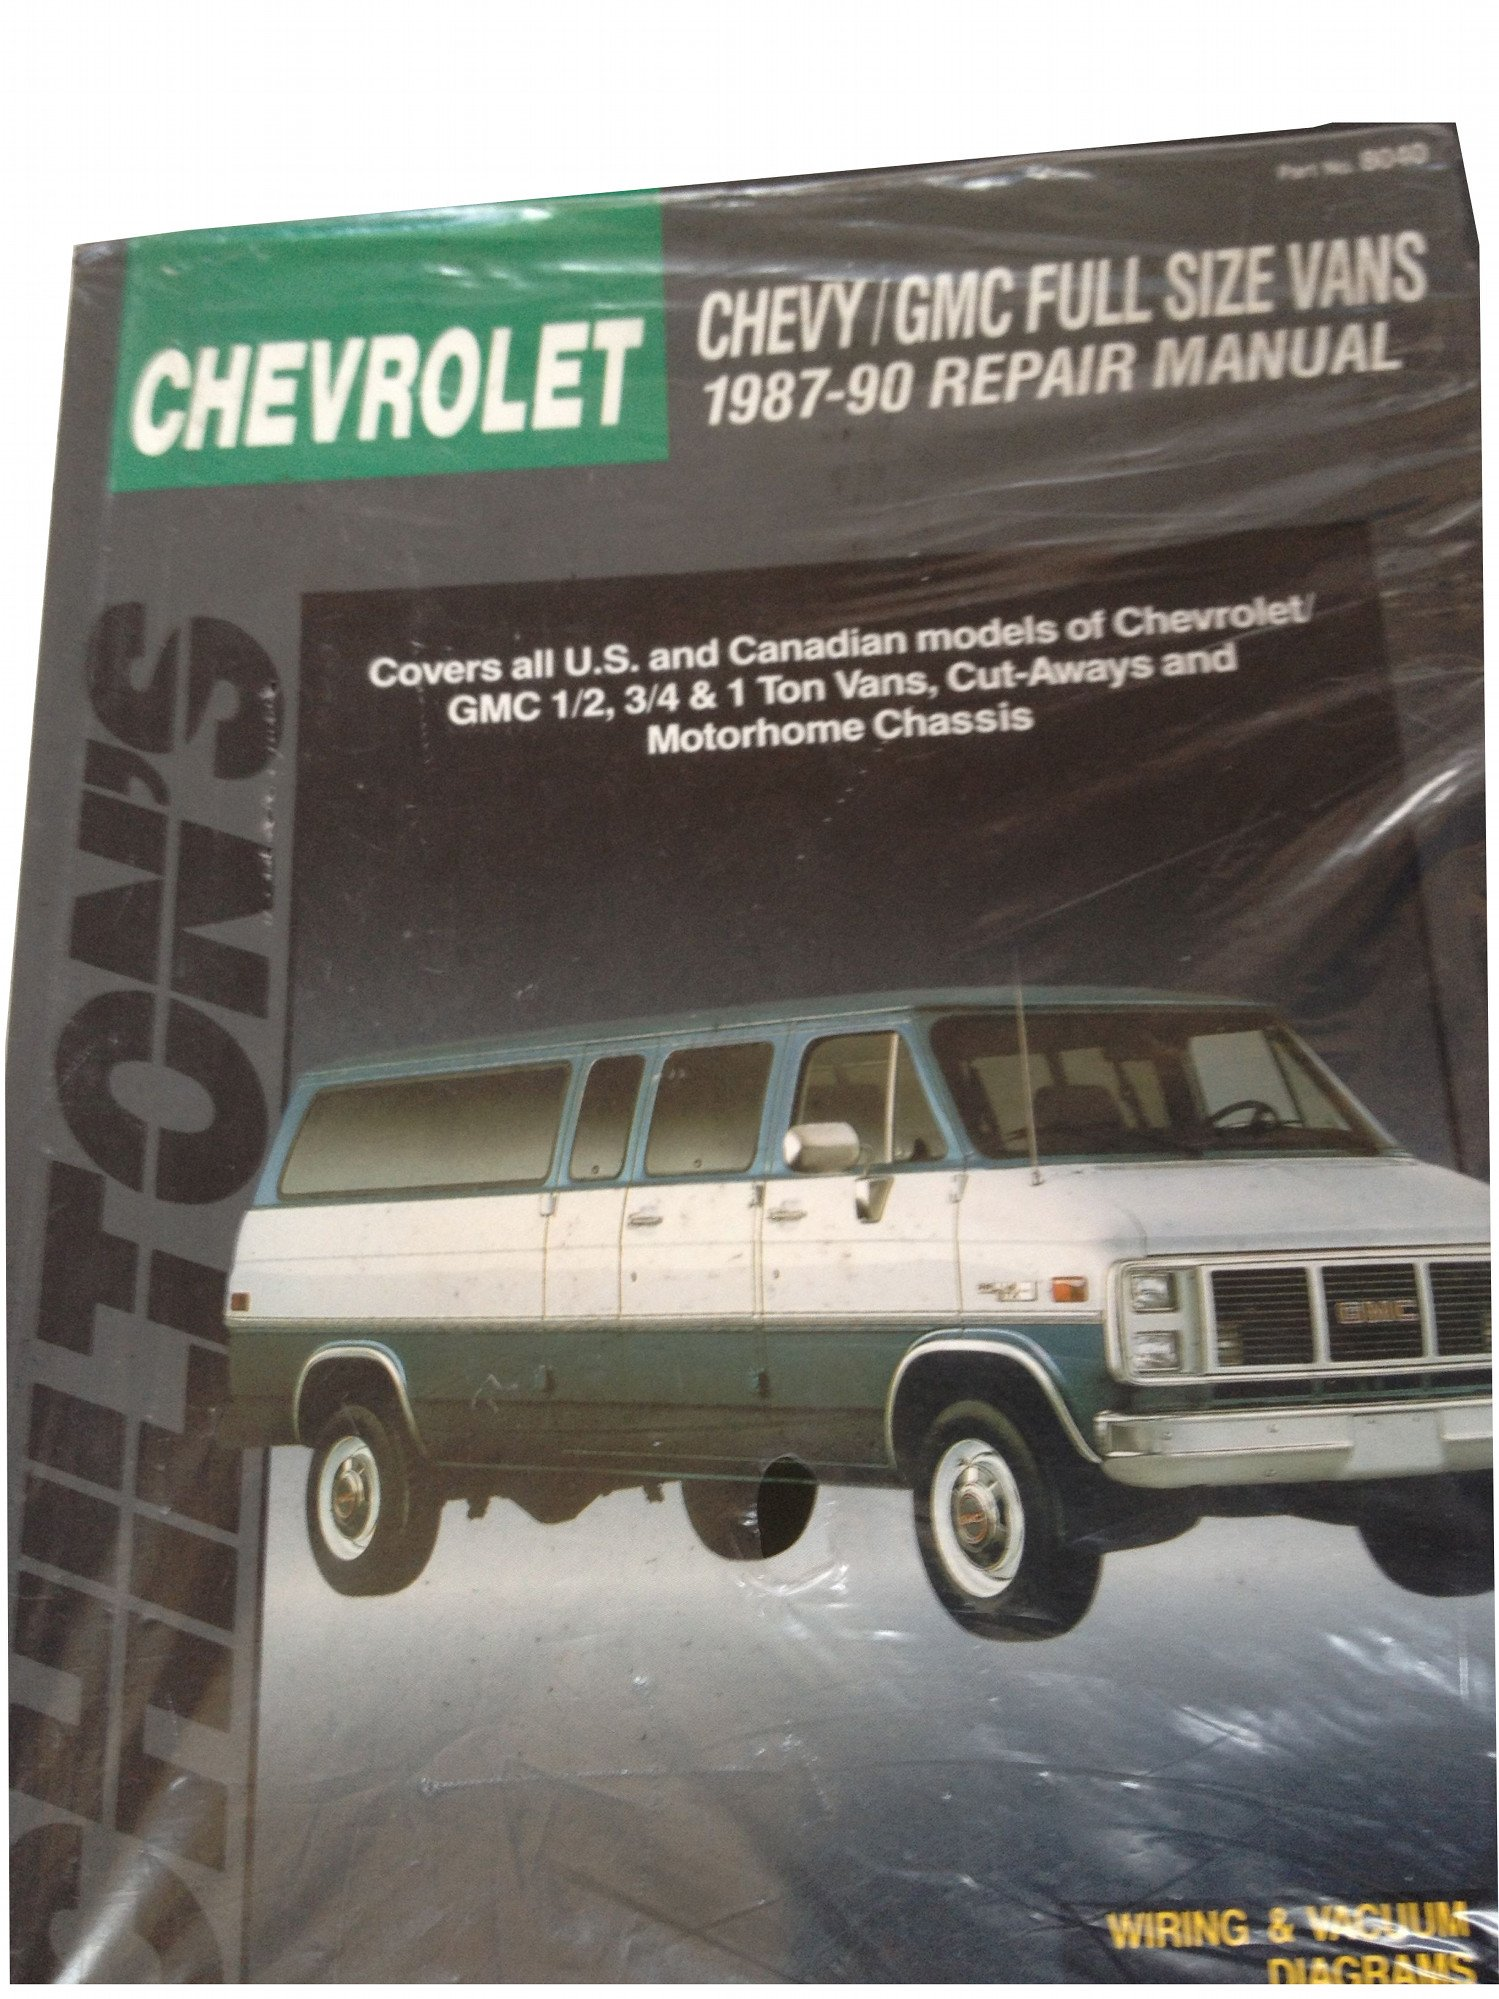 Chevy Gmc Full Size Vans 1987 90 Repair Manual Chiltons Total Car 1990 G30 Wiring Diagram Care Chilton Automotive Books 9780801980404